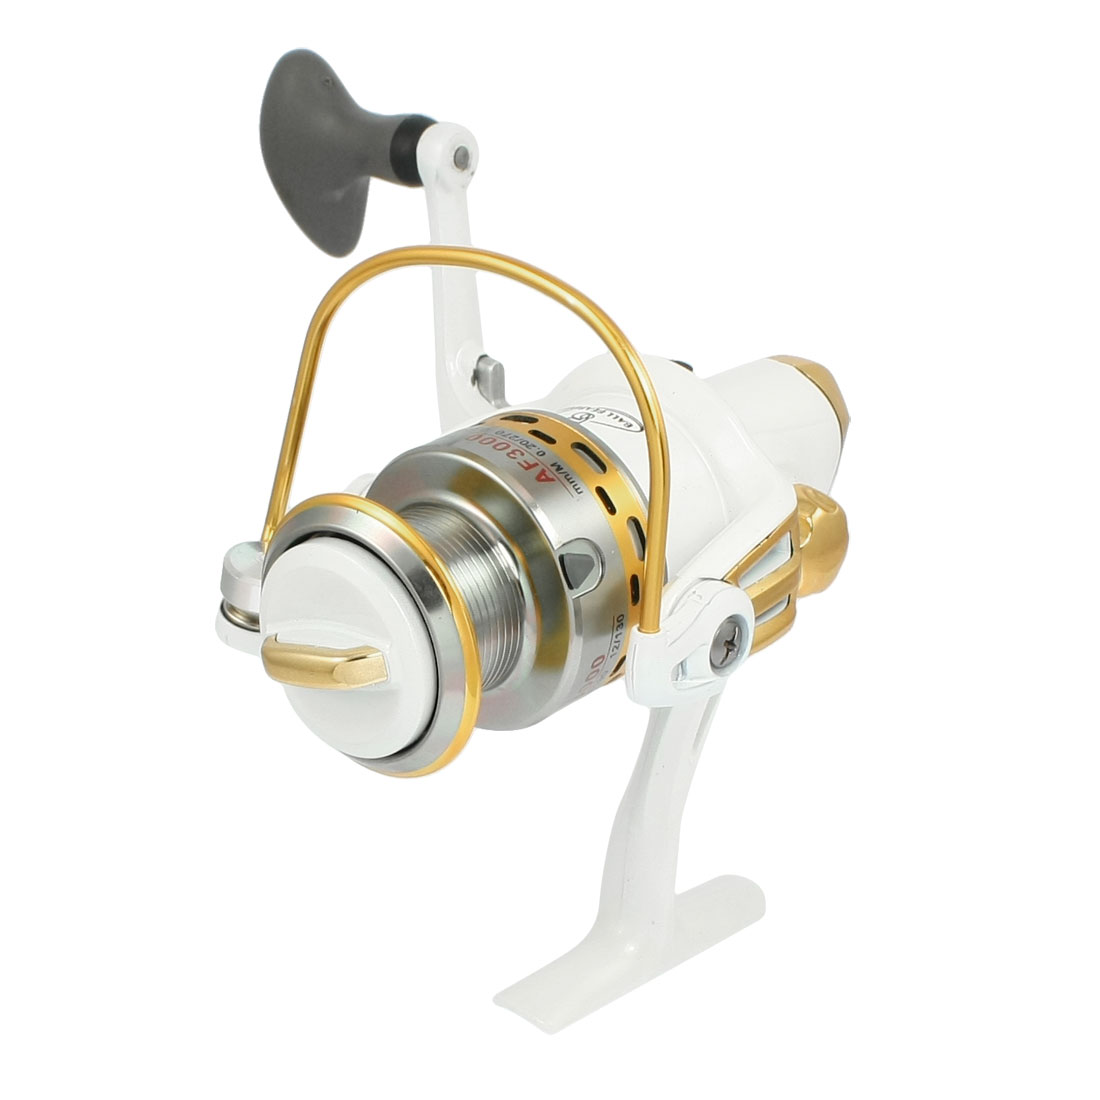 Offwhite Gear Ratio 5.5:1 3-Ball Bearings Fishing Spinning Reel AF3000